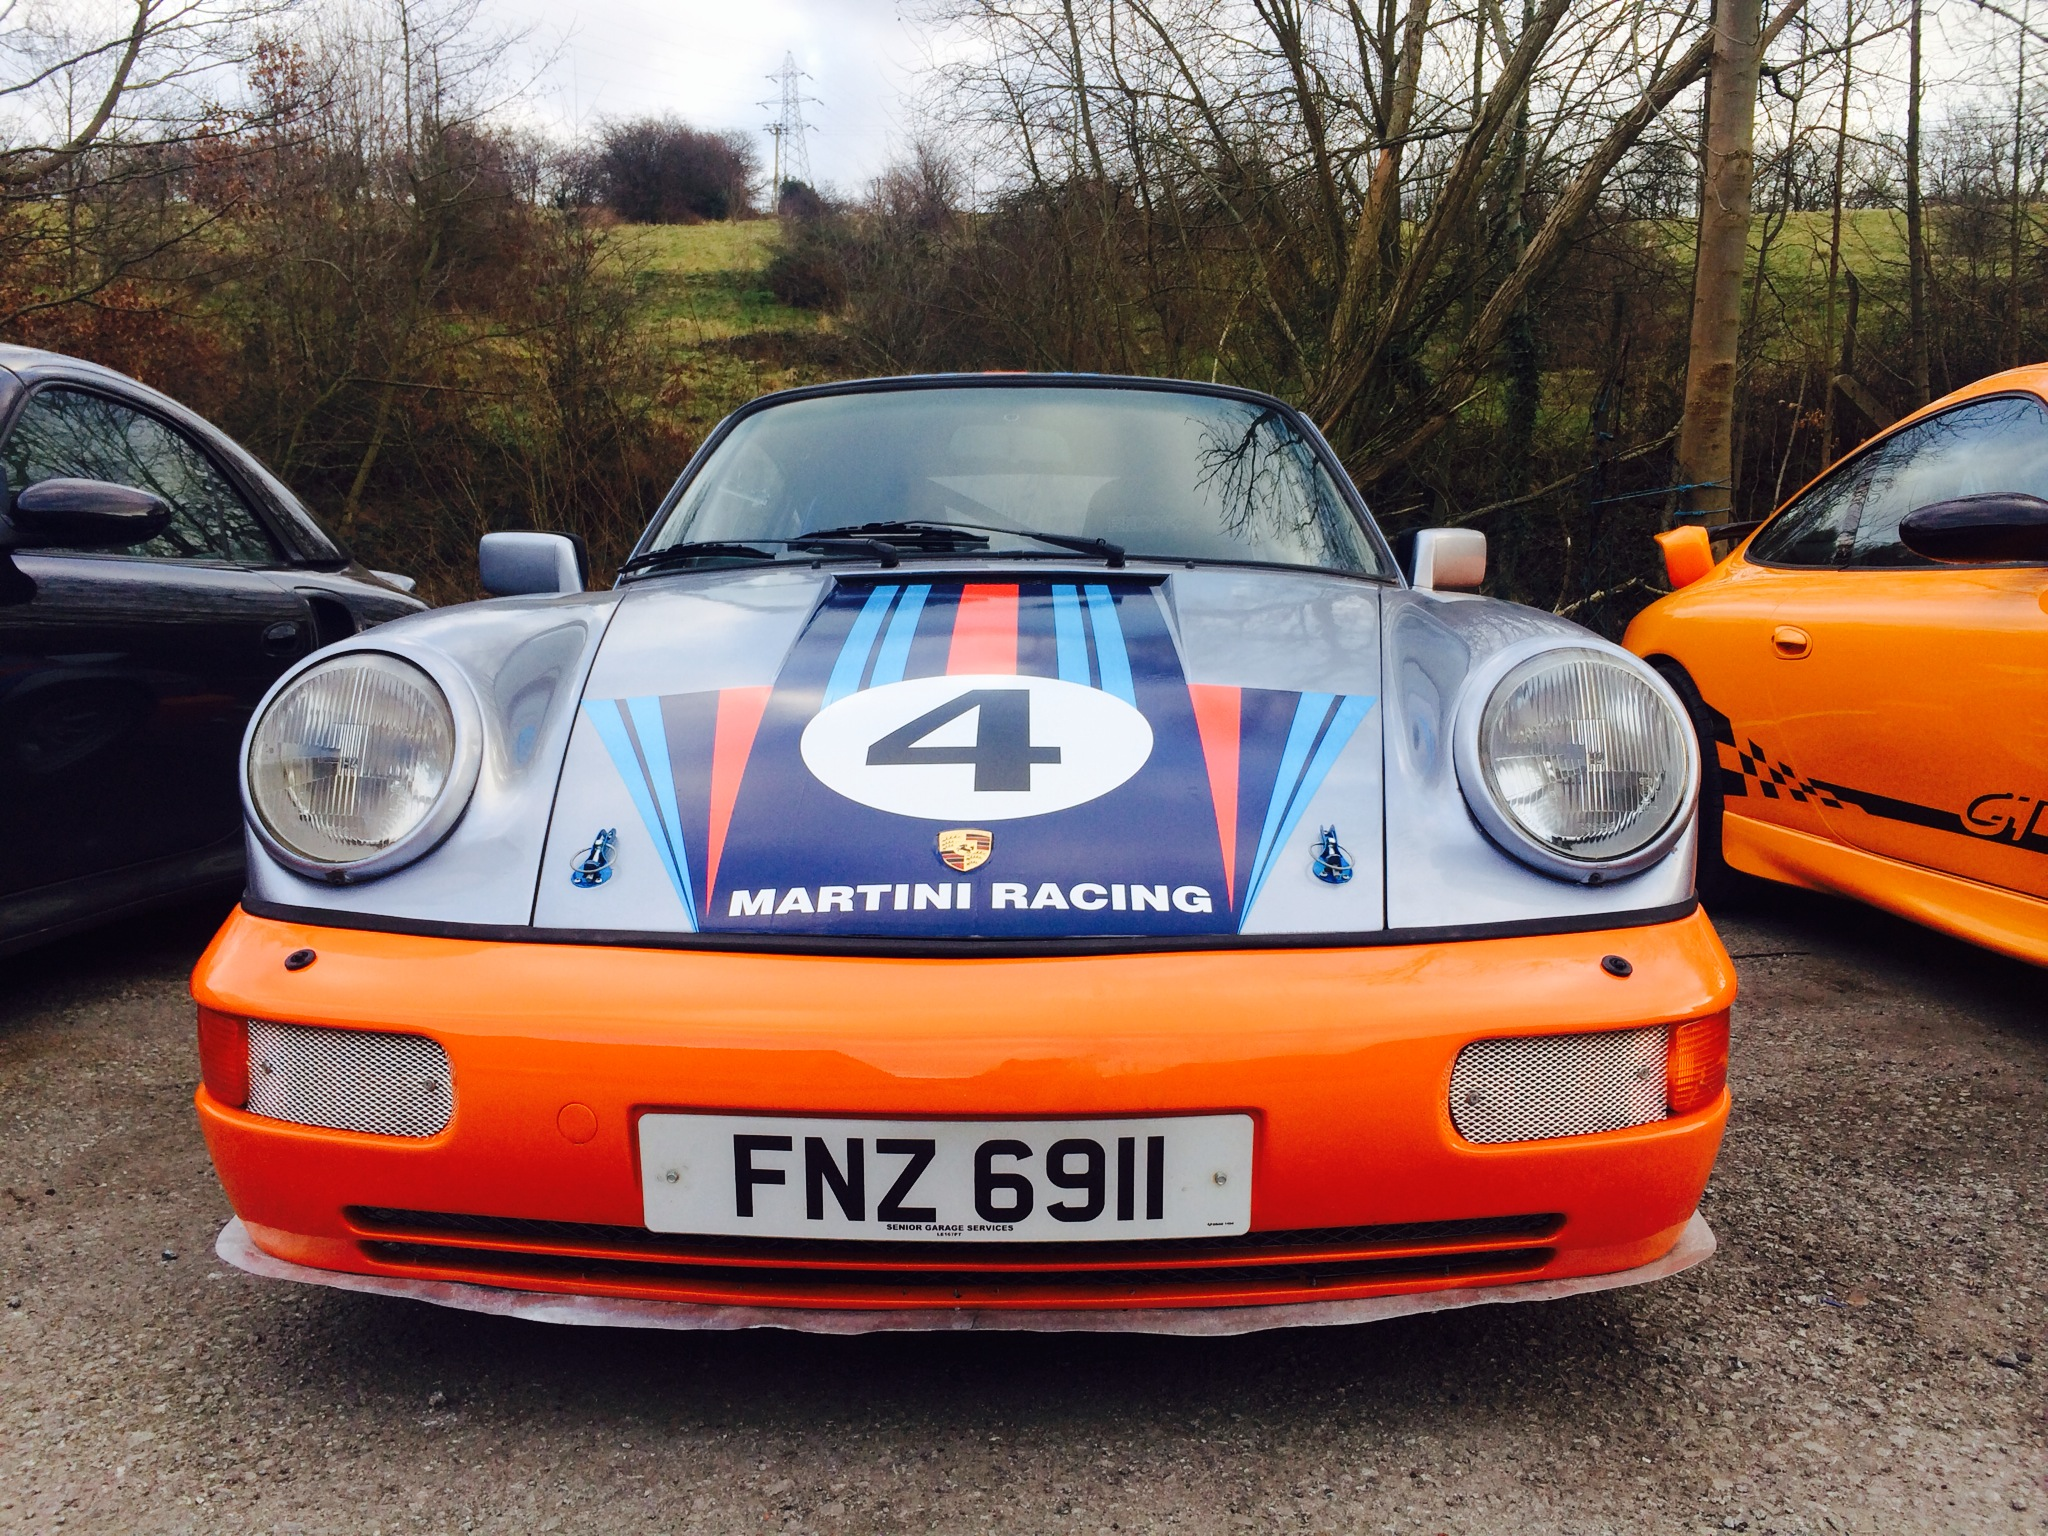 For Sale: Stunning Porsche 911 SC Martini RS Replica